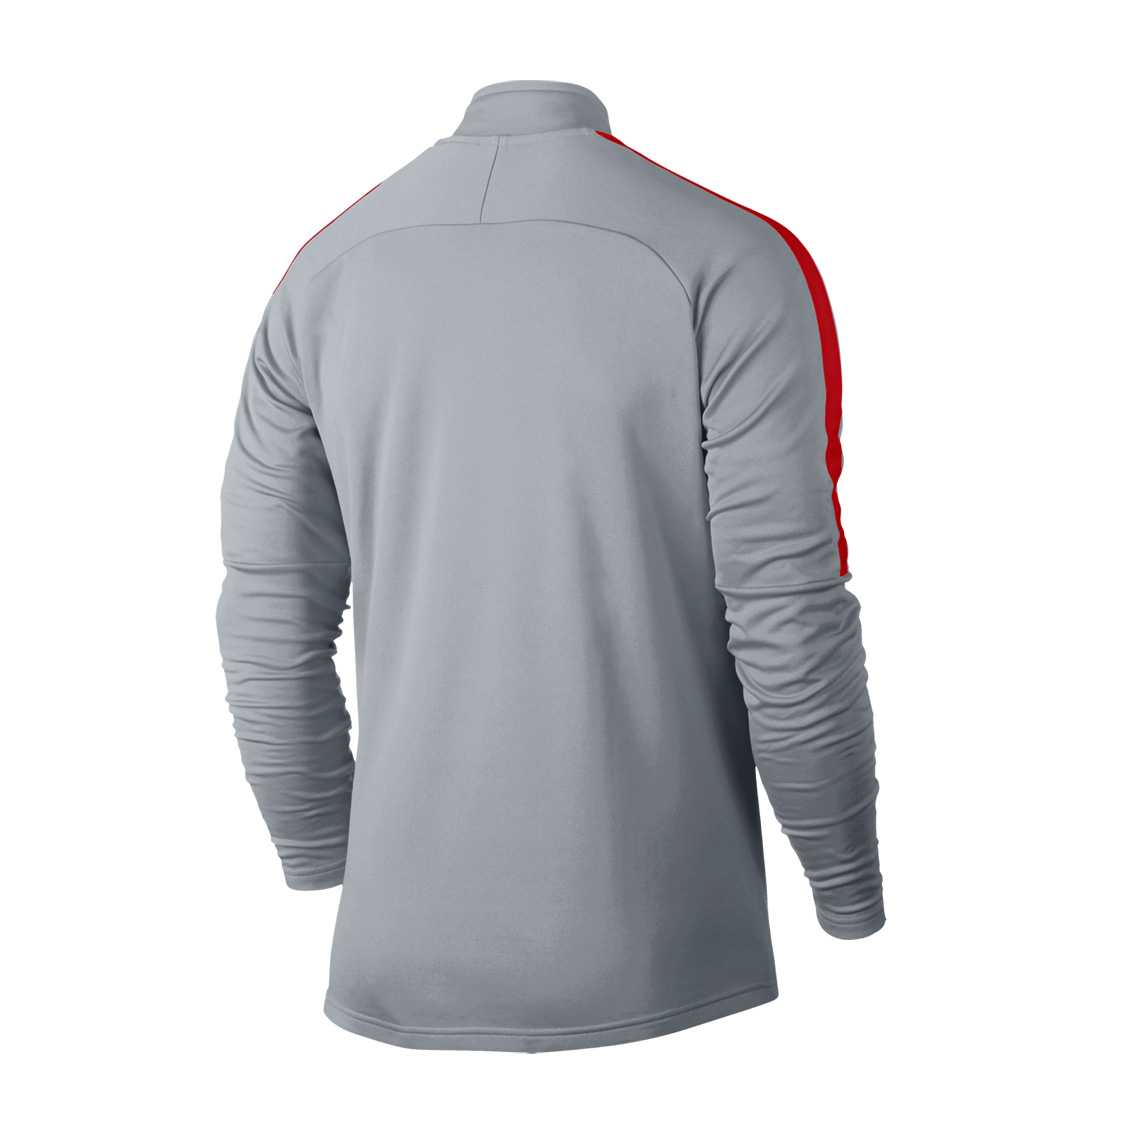 00f1be96f Nike Men's Dry Academy ¼ Zip Football Drill Top- Wolf Grey | Adults ...